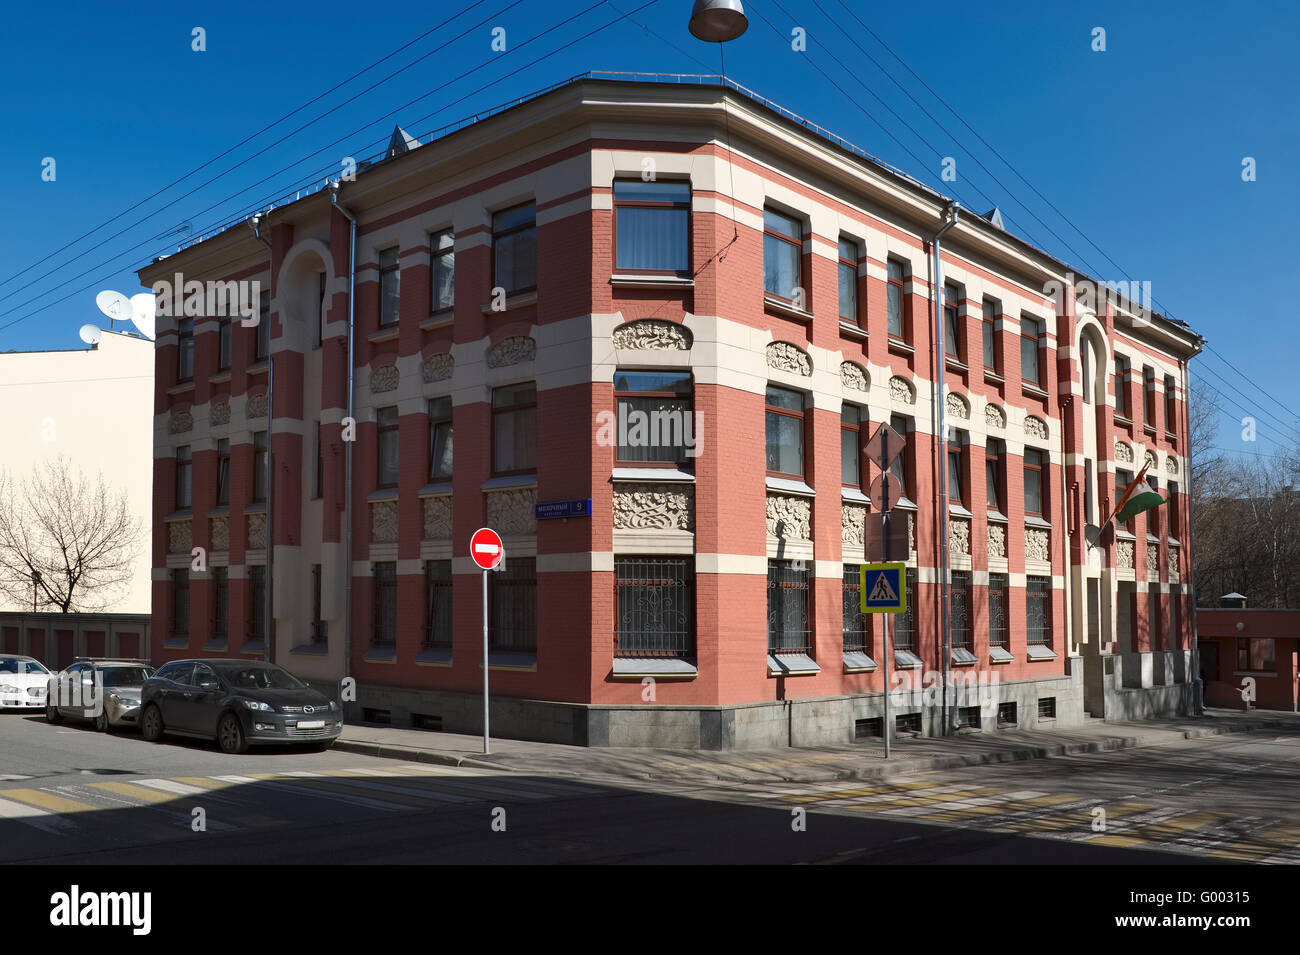 Building of the Embassy of Cote d'Ivoire in Moscow, Korobeynikov Lane, 14/9 - Stock Image